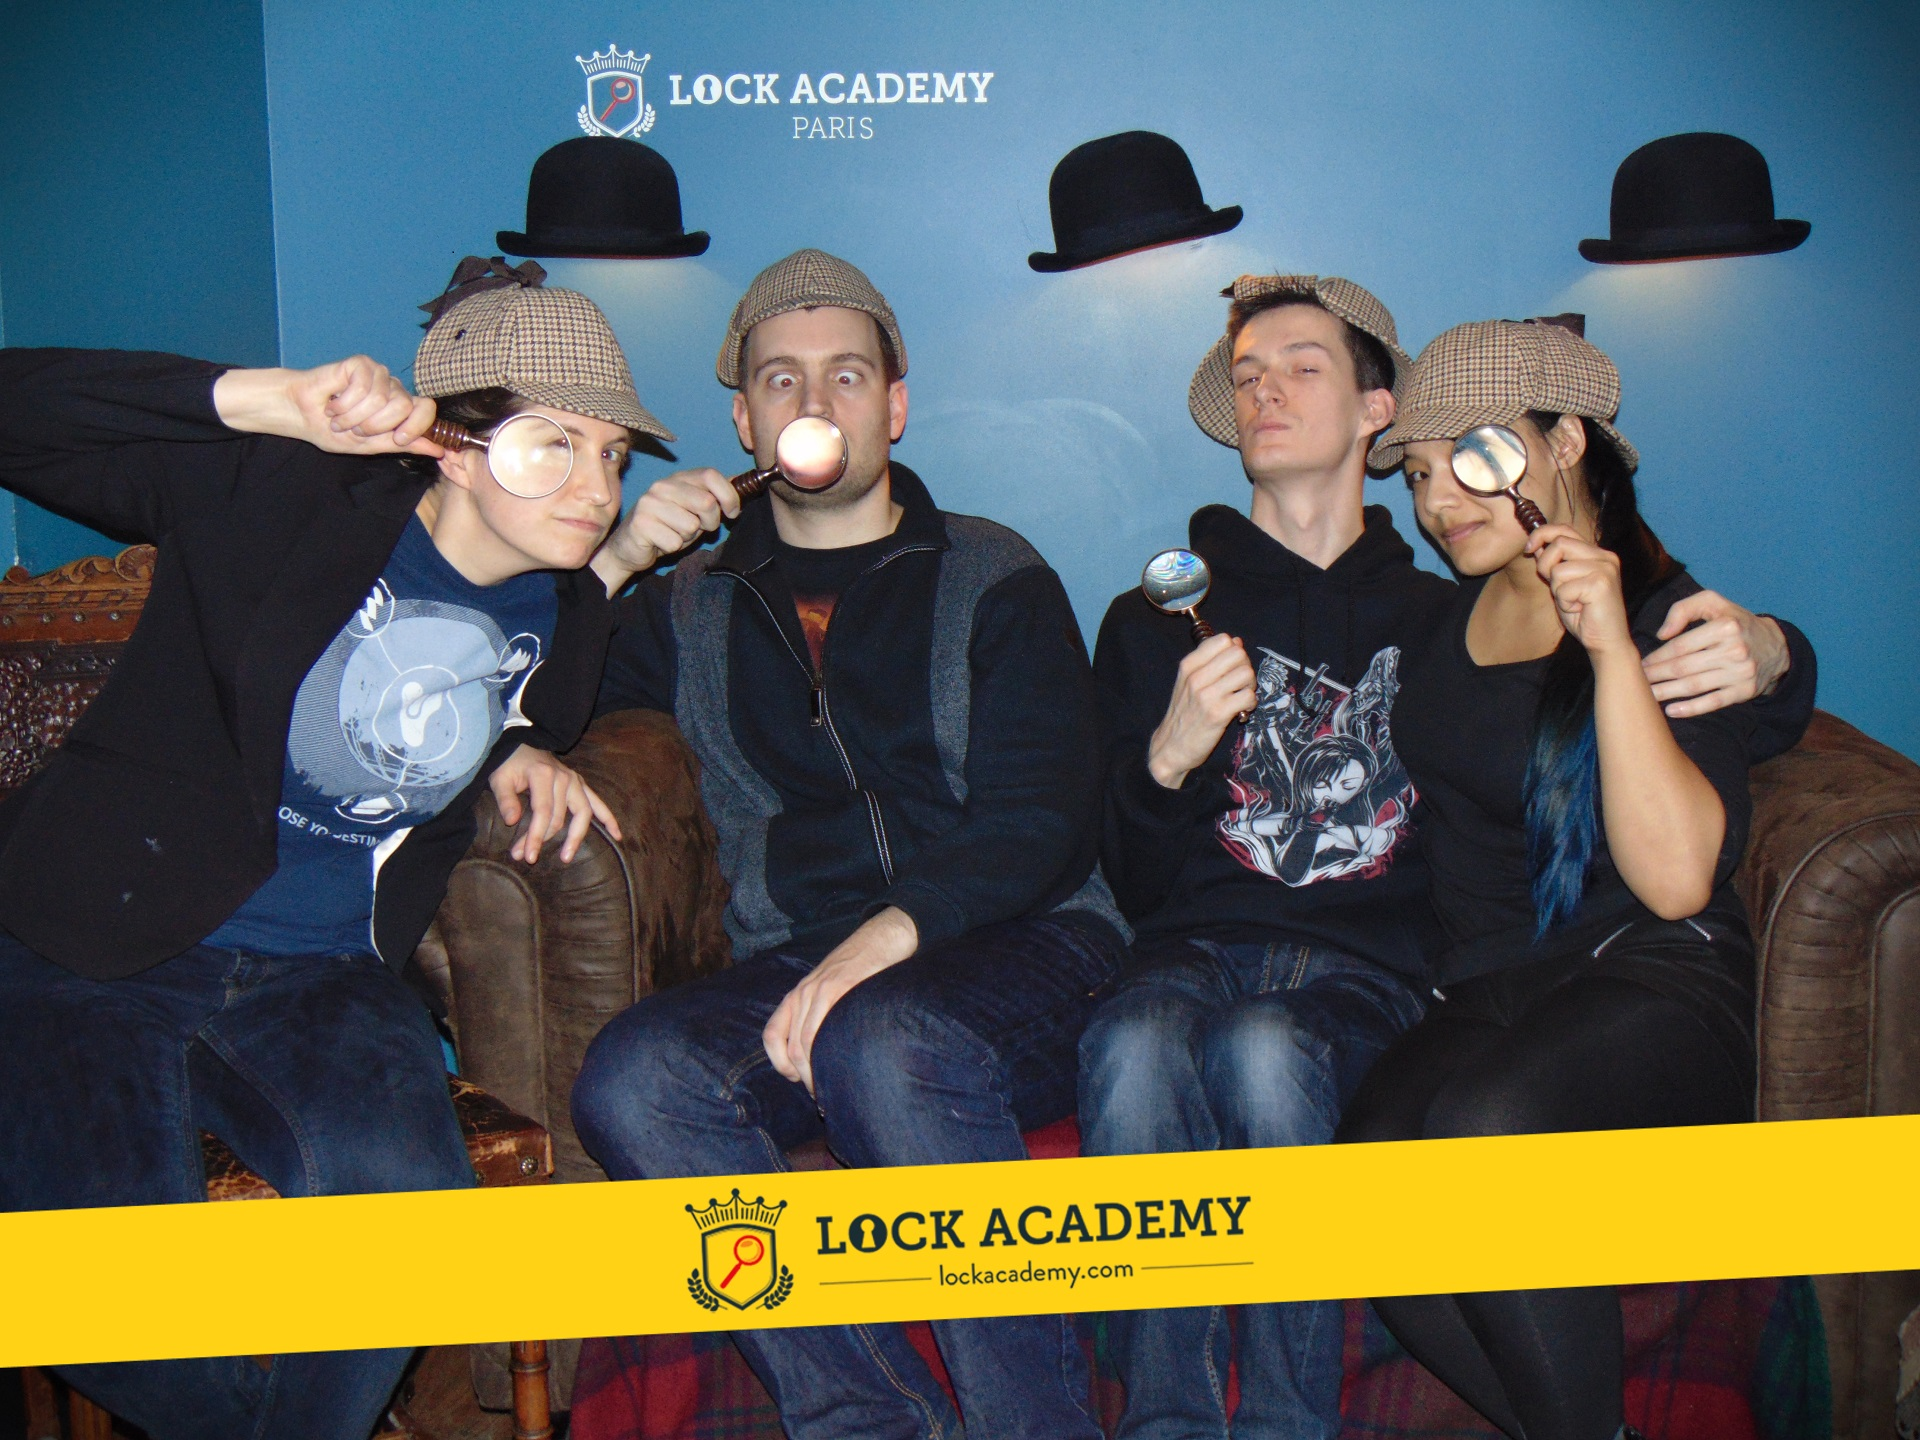 LA Confidential - Lock Academy - Photo groupe